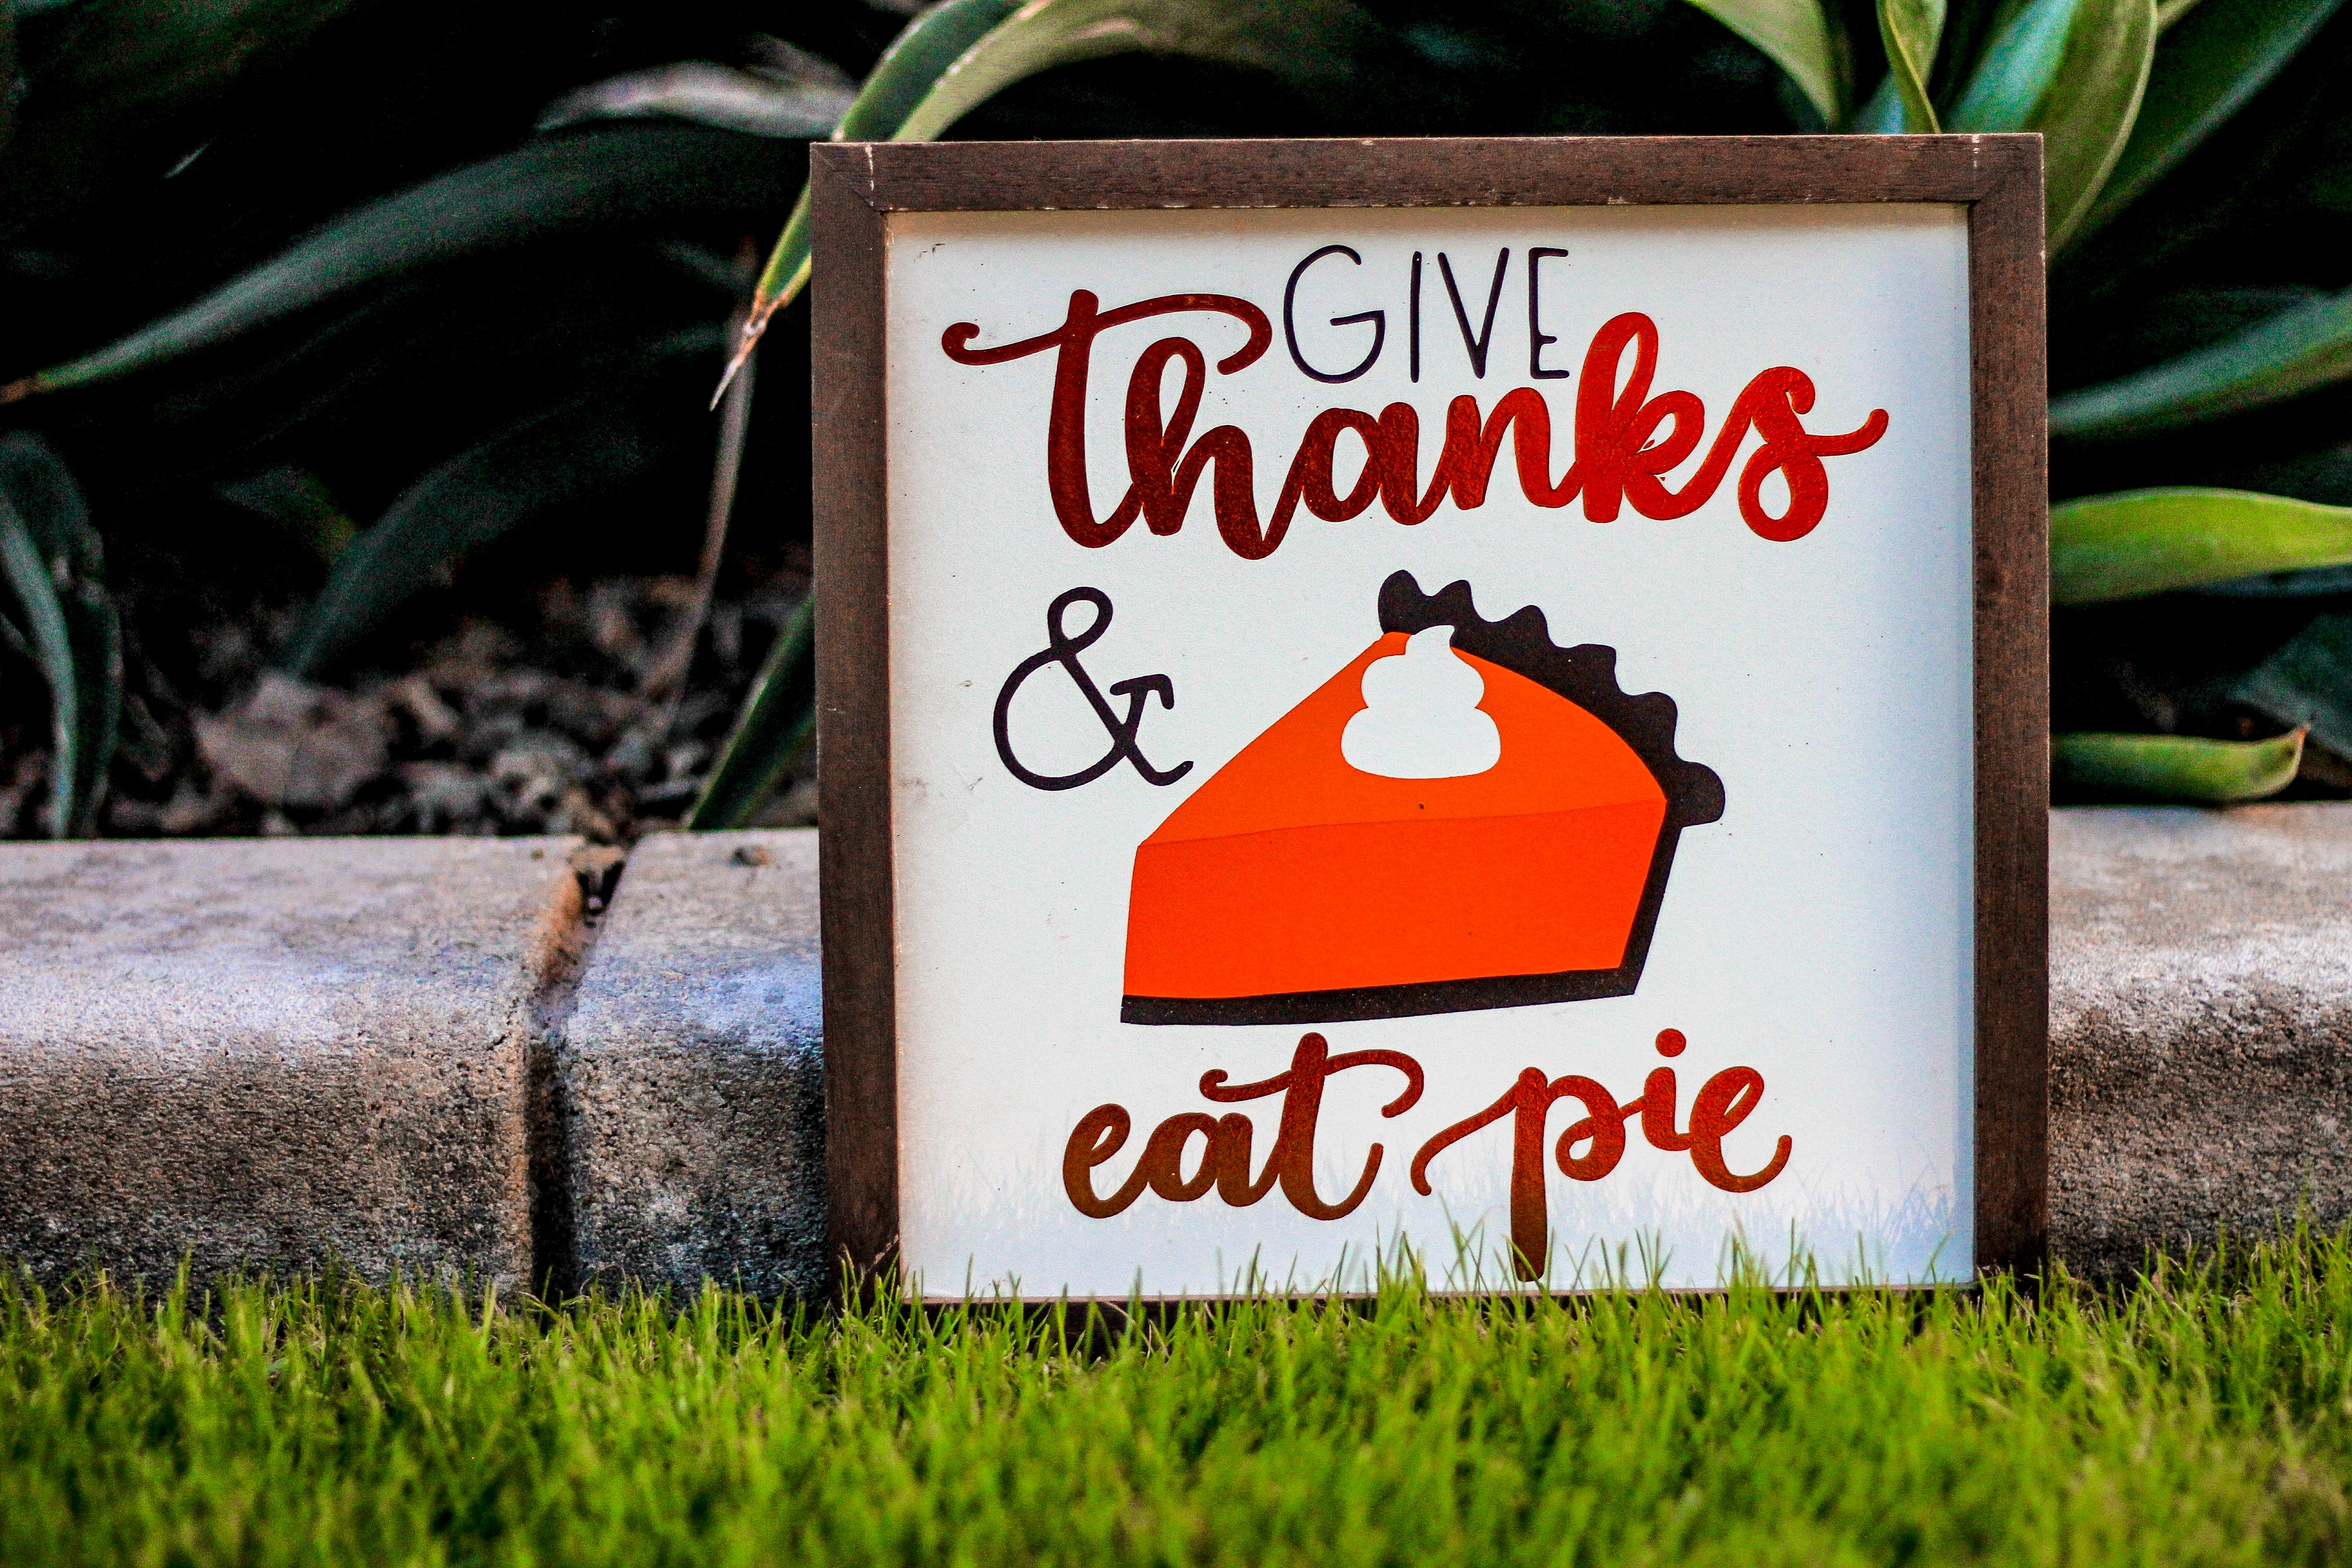 small sign in a yard that says give thanks and eat pie